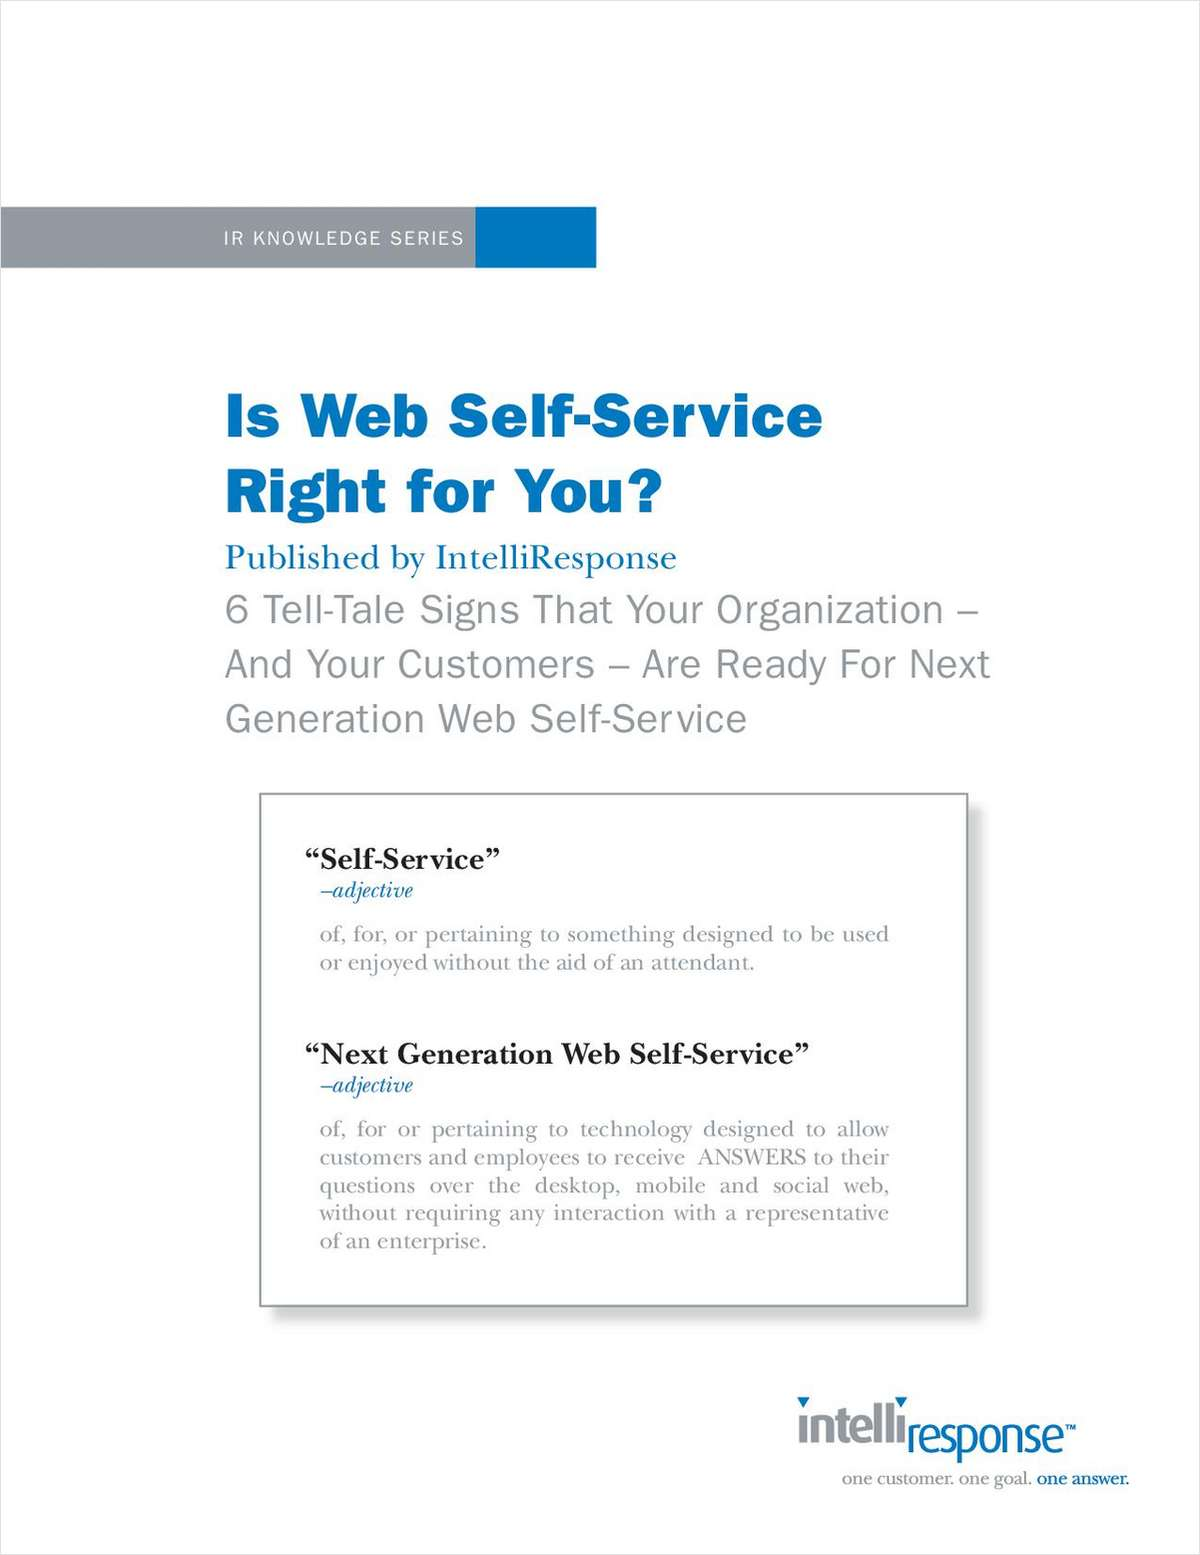 Is Web Self-Service Right for You?